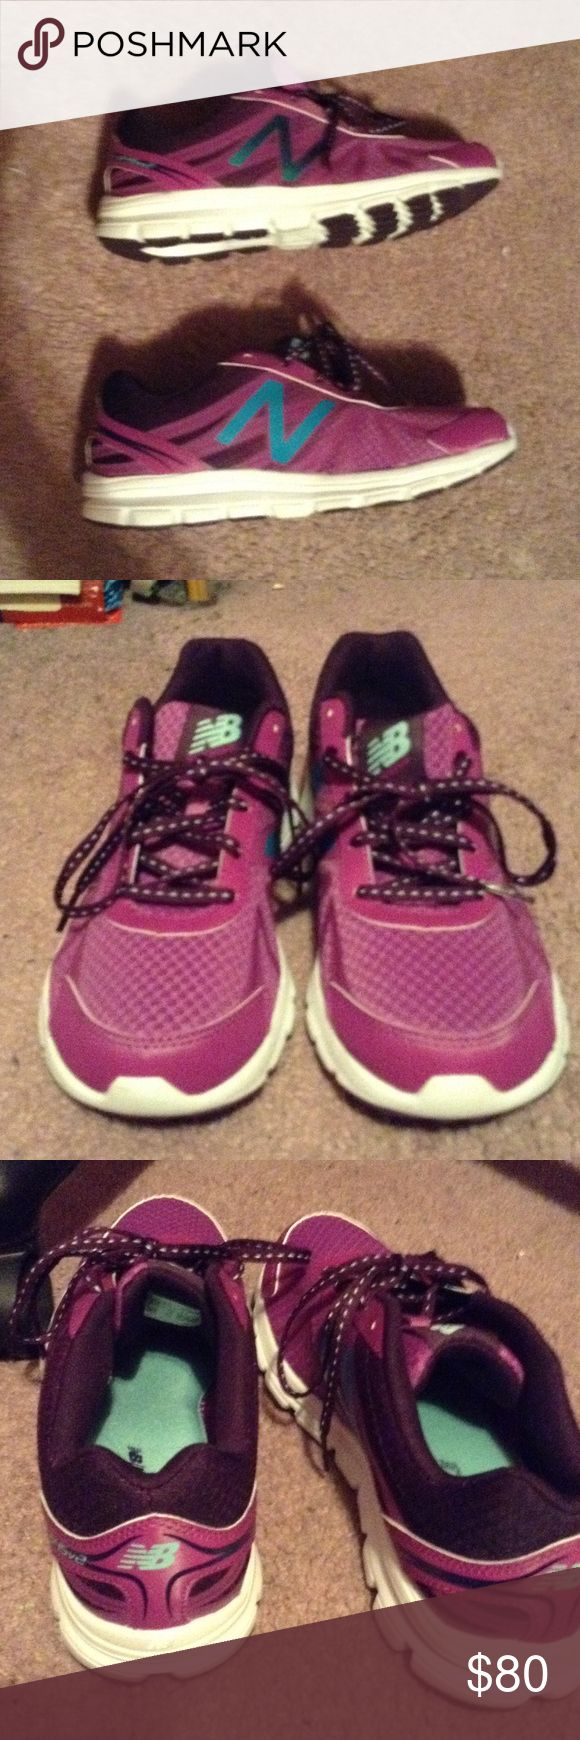 New balance purple running shoes These shoes have memory sole they don't have a box! Haven't worn them they are very stylish brand new! New Balance Shoes Sneakers